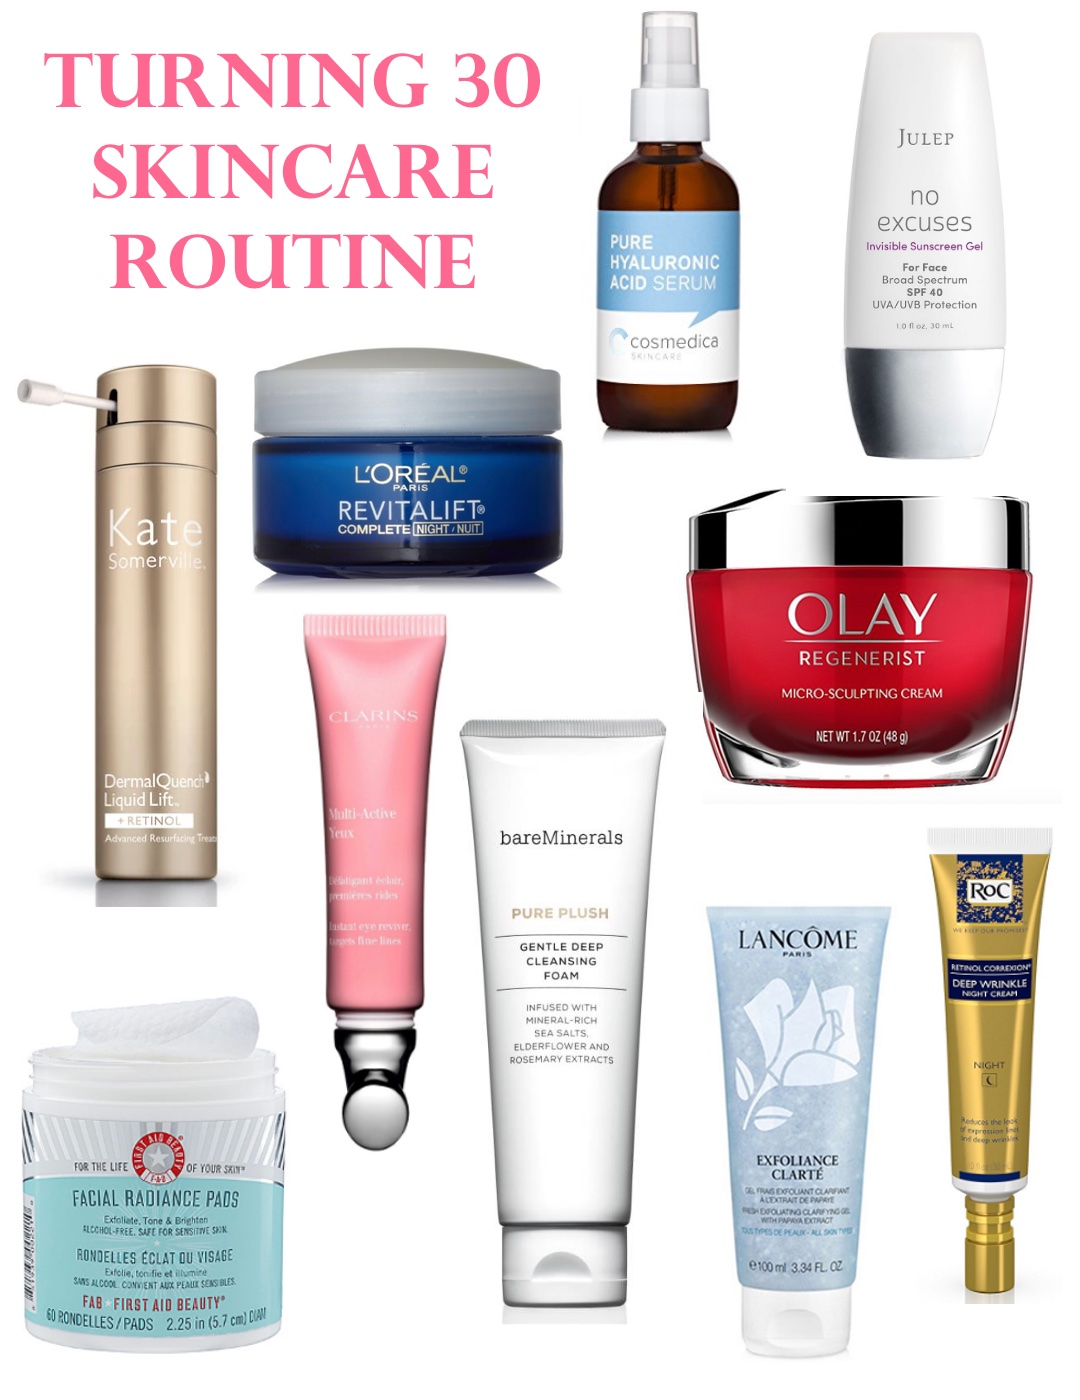 Skincare Routine for 30 year olds